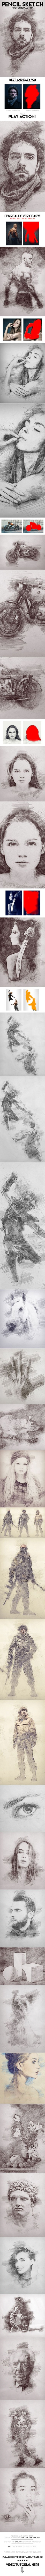 Pencil Sketch Photoshop Action • Only available here! → https://graphicriver.net/item/pencil-sketch-photoshop-action/17227306?ref=pxcr